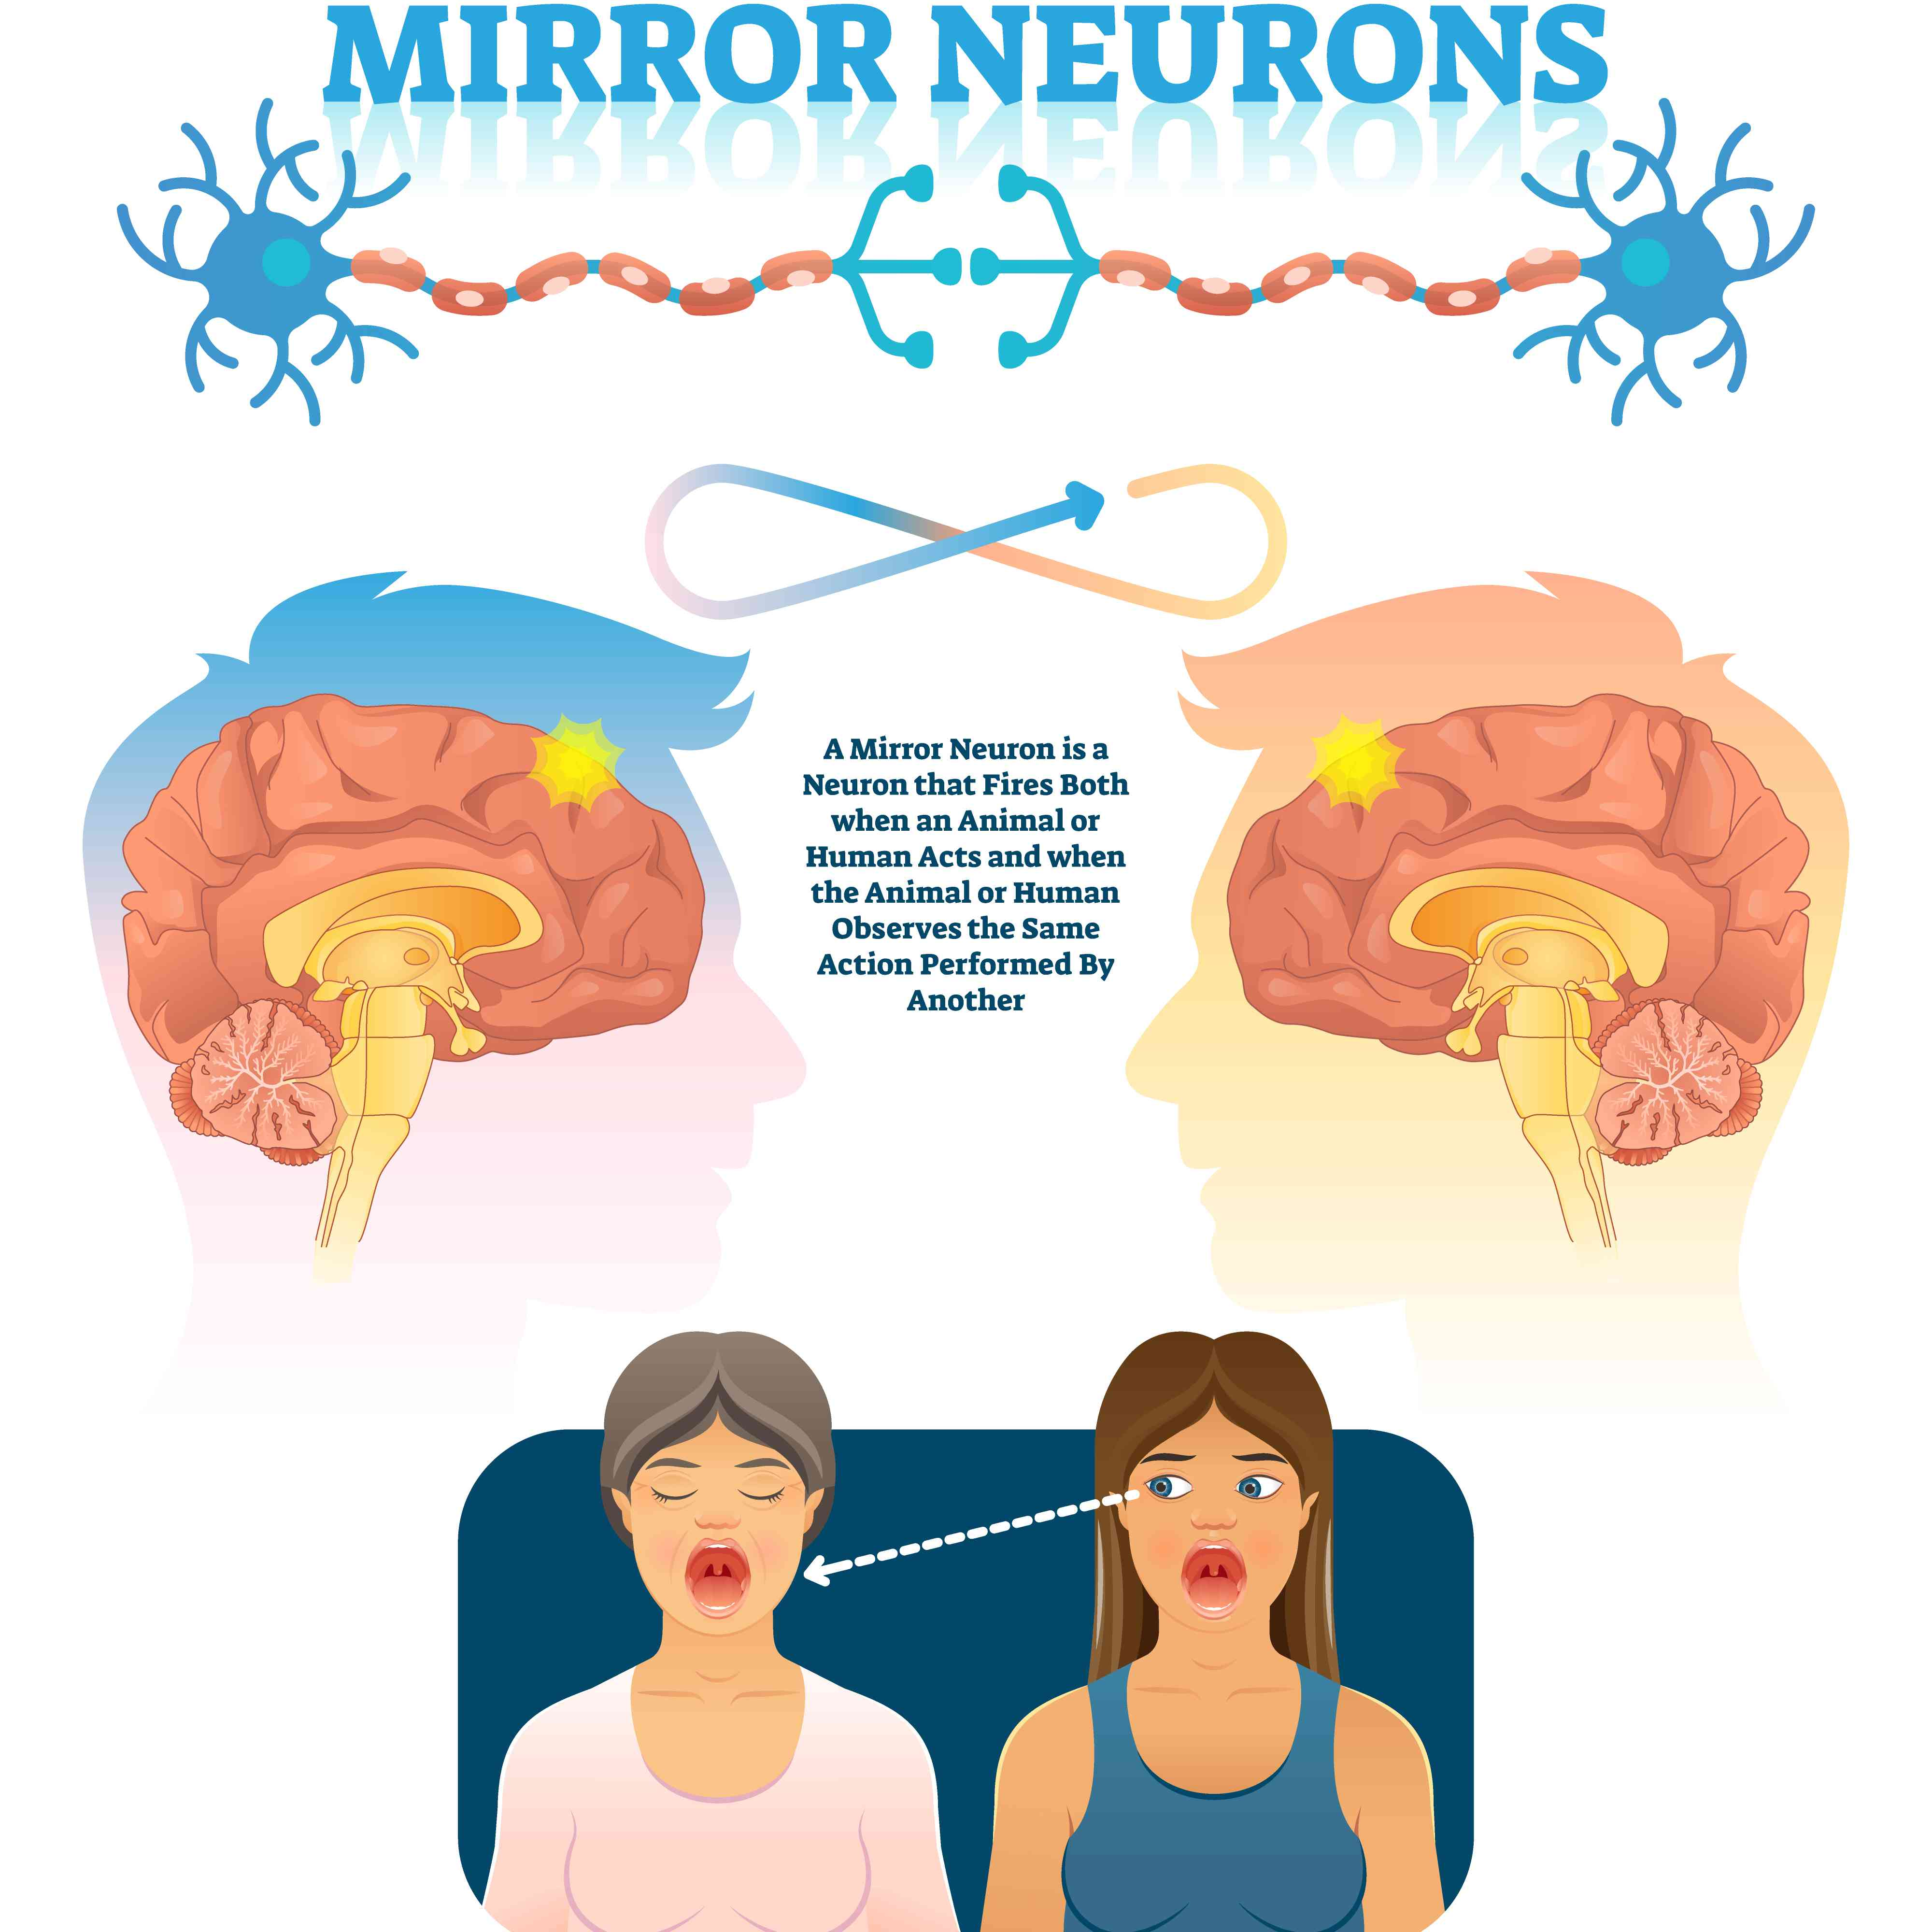 A diagram showing how mirror neurons work.